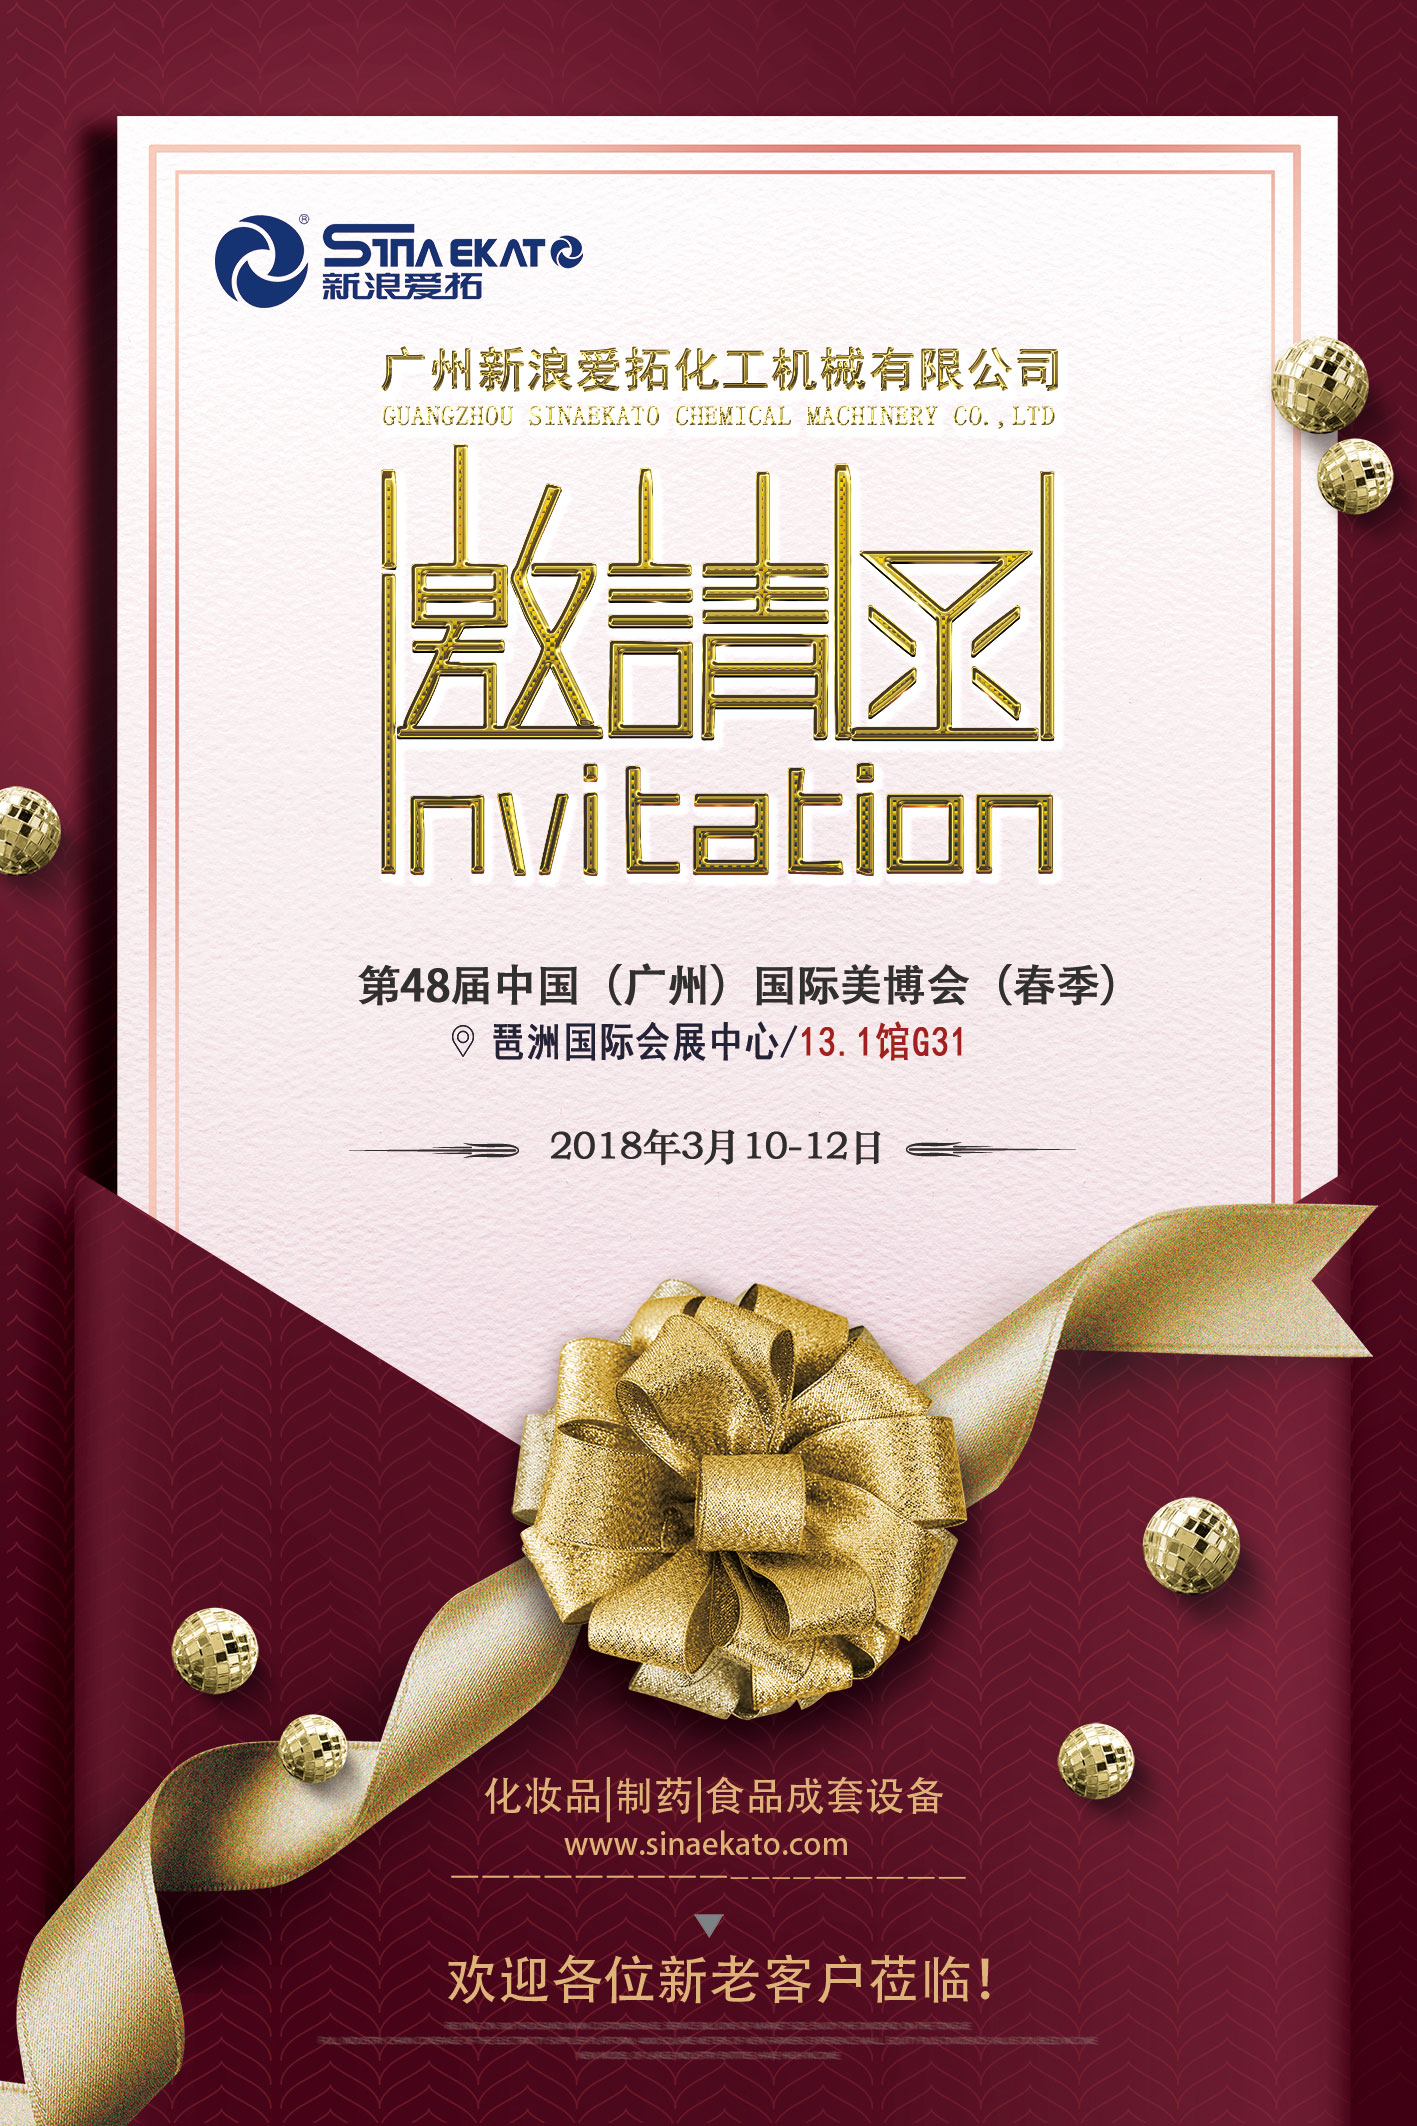 【SINAEKATO】The Invitation Letter of the 48th Guangzhou Spring Fair,2018